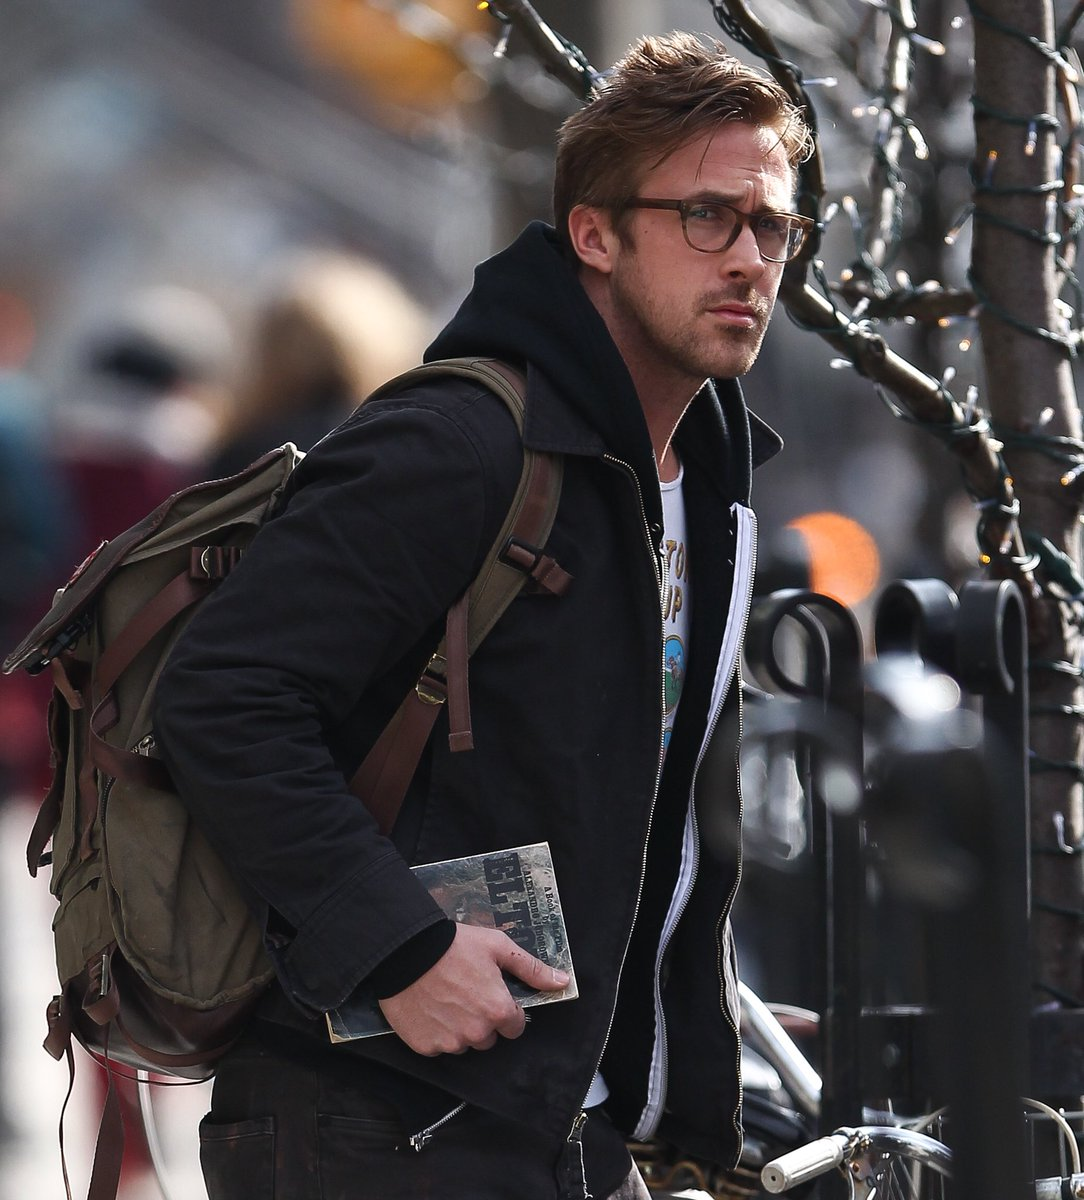 📸 Ryan Gosling Out & About in NYC 2013